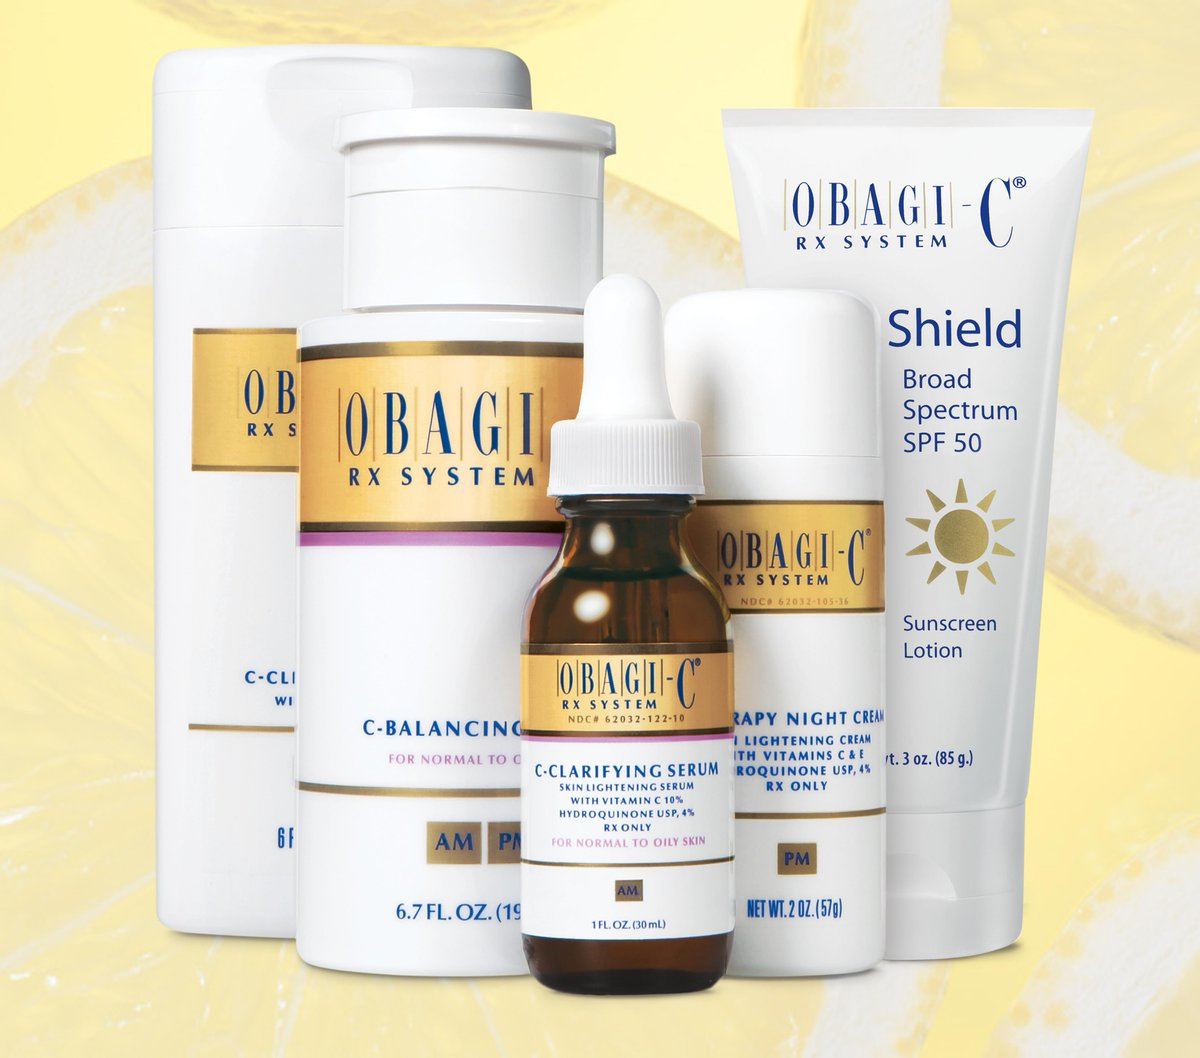 RETWEET if you use Obagi-C® Rx. http://t.co/WVfiRjOZKO http://t.co/HzOG4WE6M0